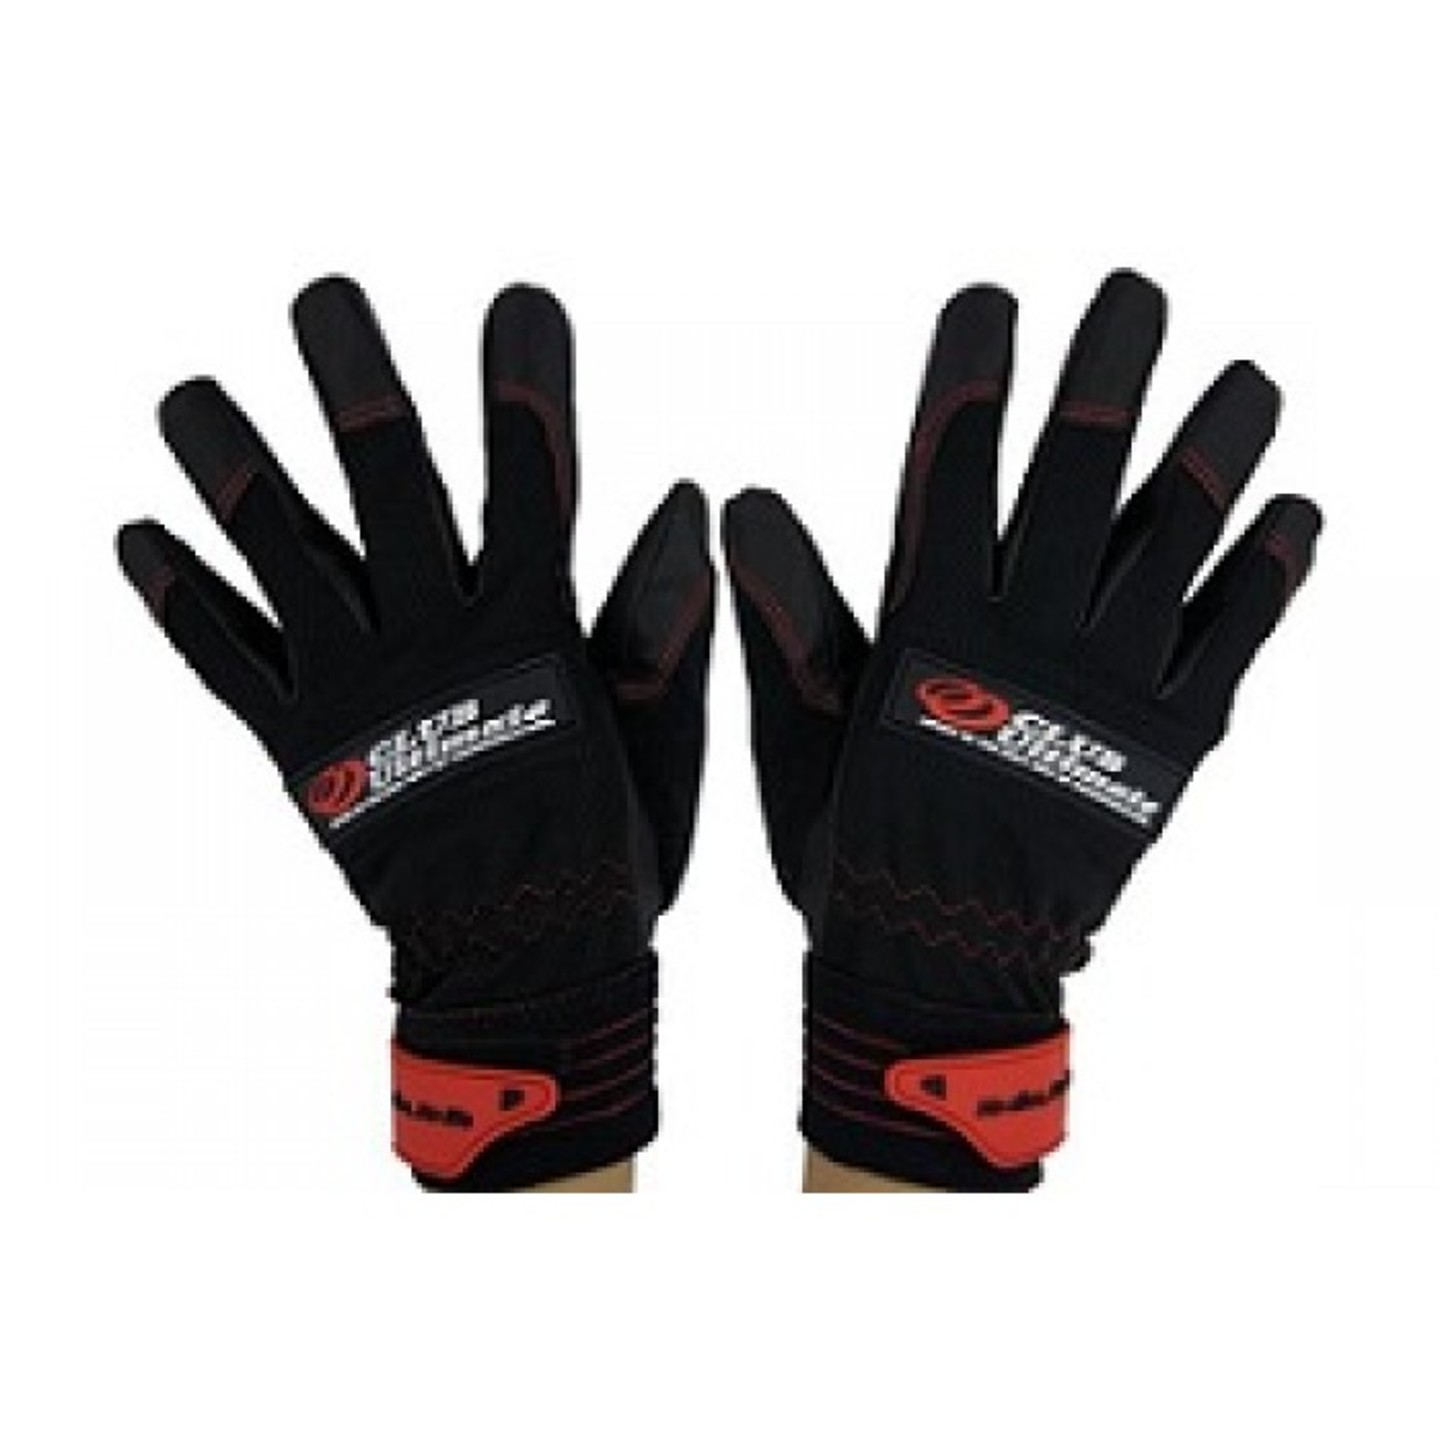 Club Jr Ultimate Gloves 2.0